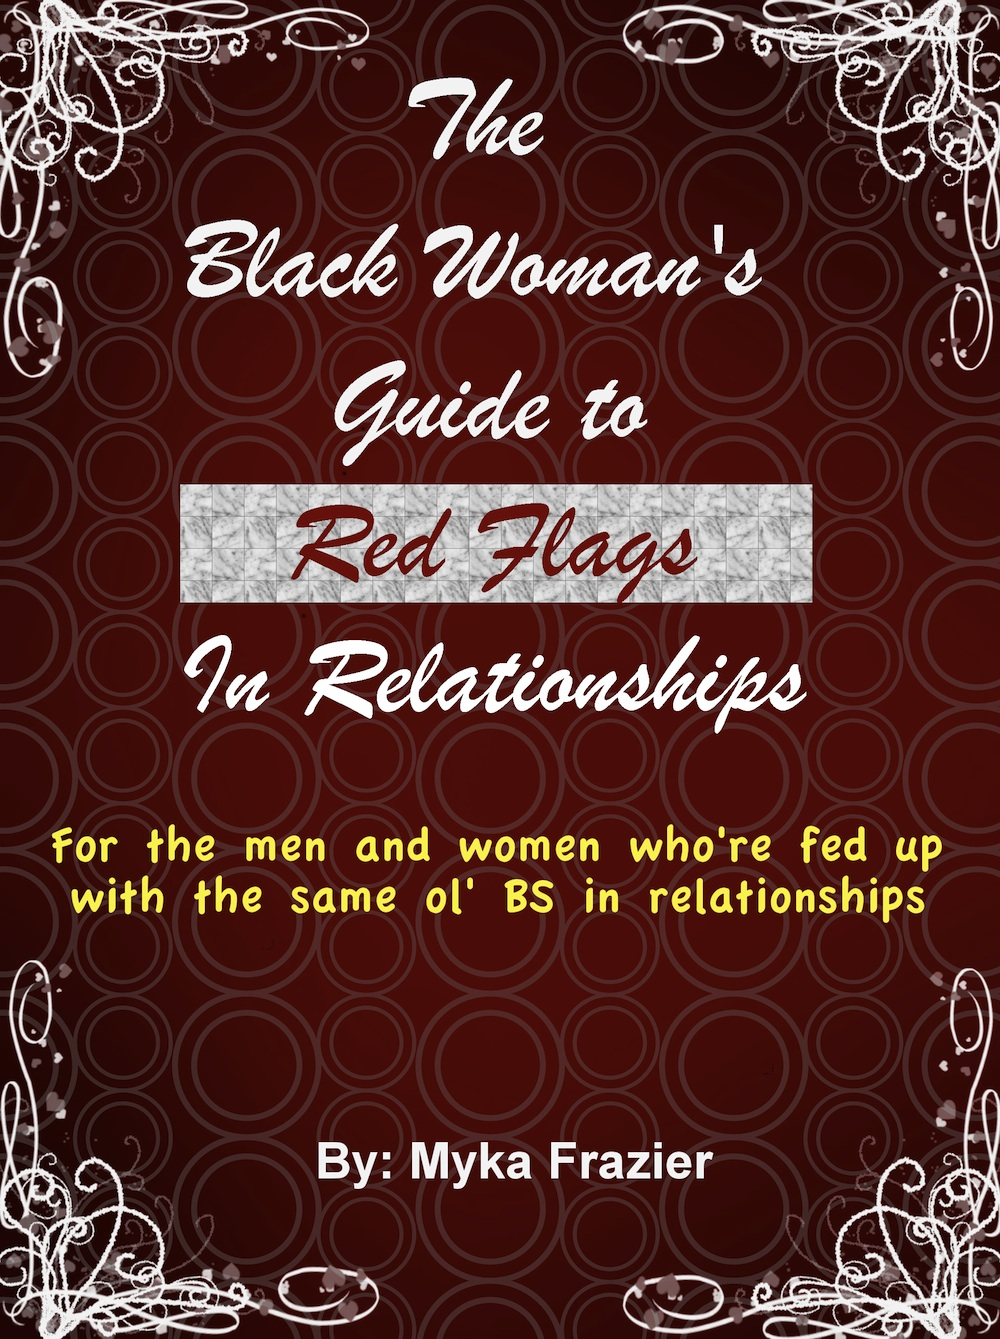 The Black Woman's Guide to Red Flags in Relationships